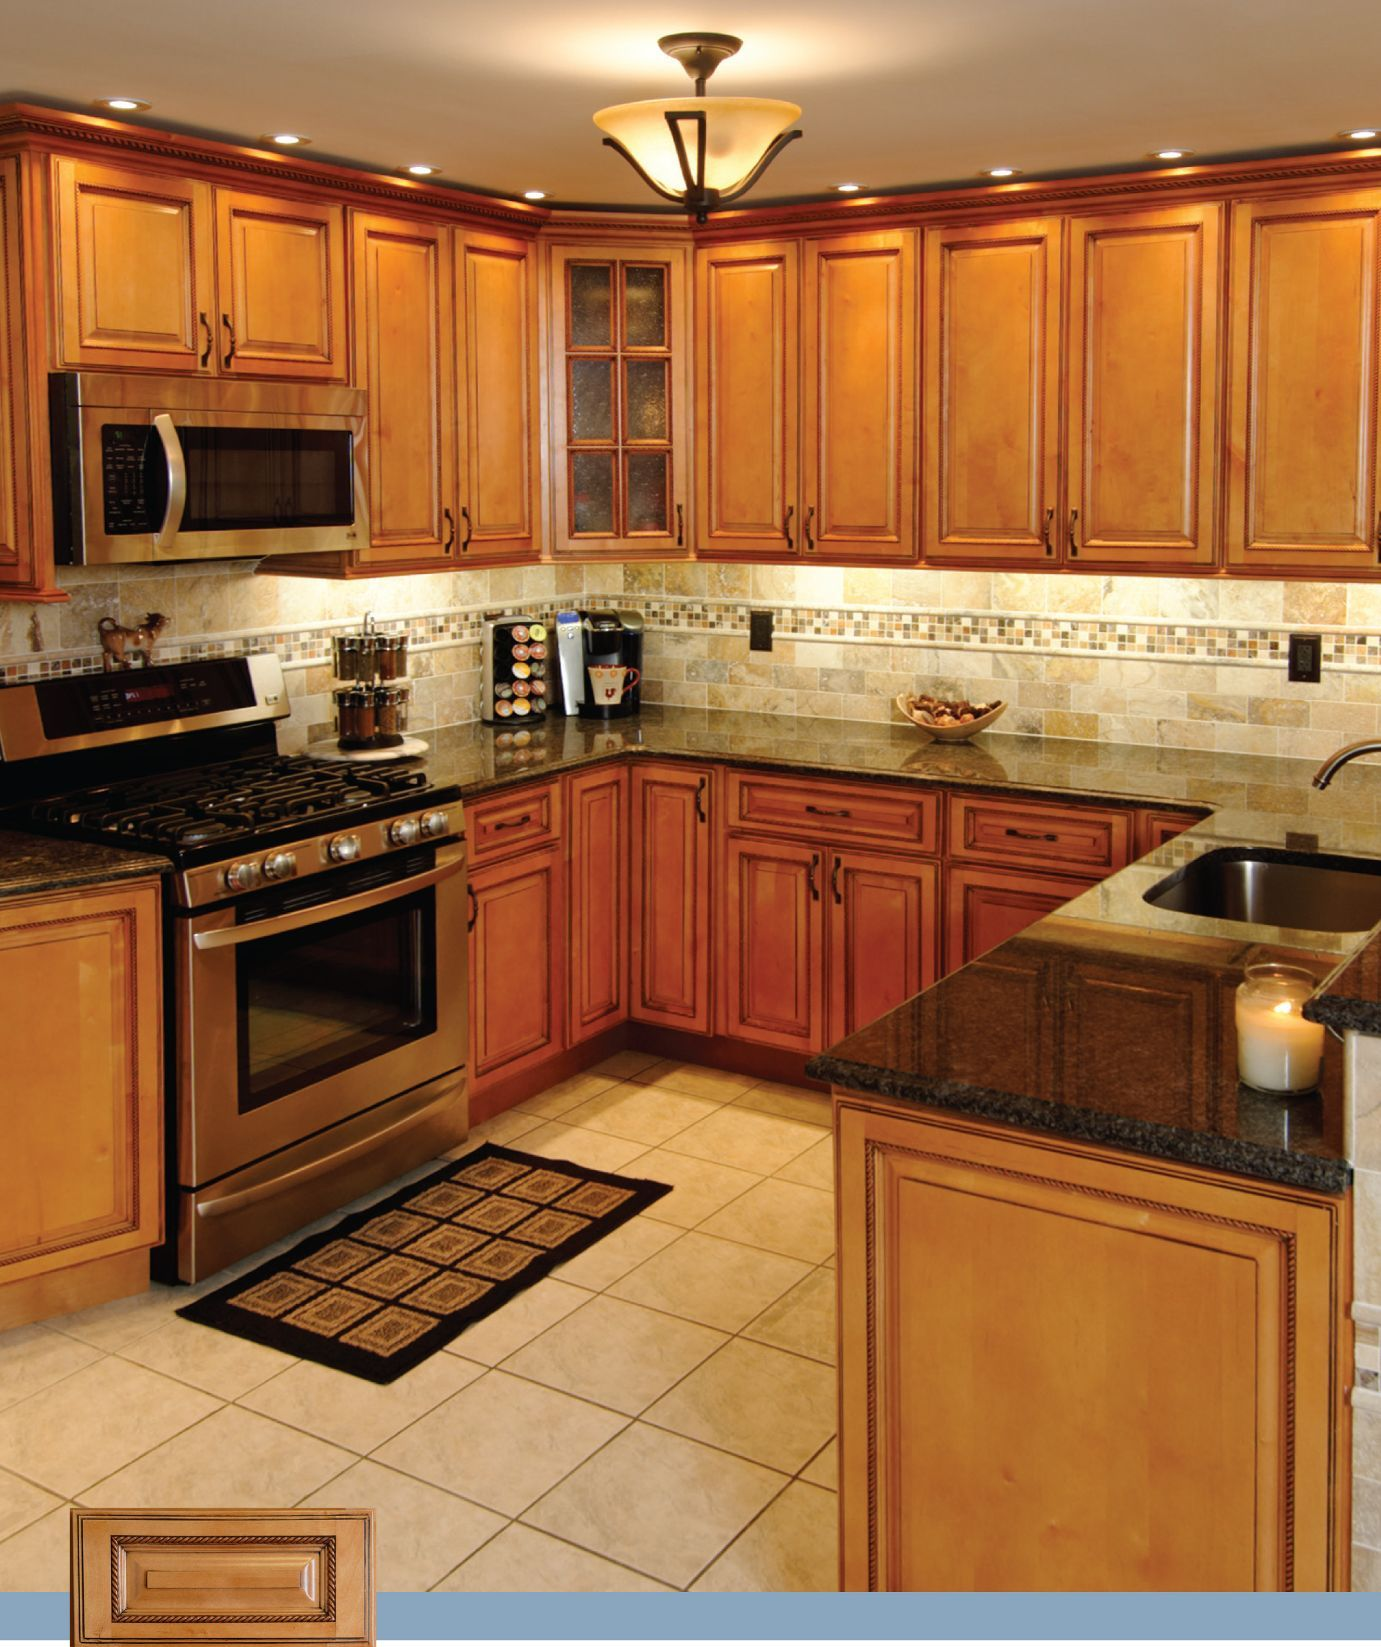 Beautiful Backsplash Ideas For Light Oak Cabinets Part - 13: Home Pictures Kitchen Backsplash Ideas Kitchen Kitchen Backsplash Ideas  With Dark Oak Cabinets Cabin Kitchen Backsplash